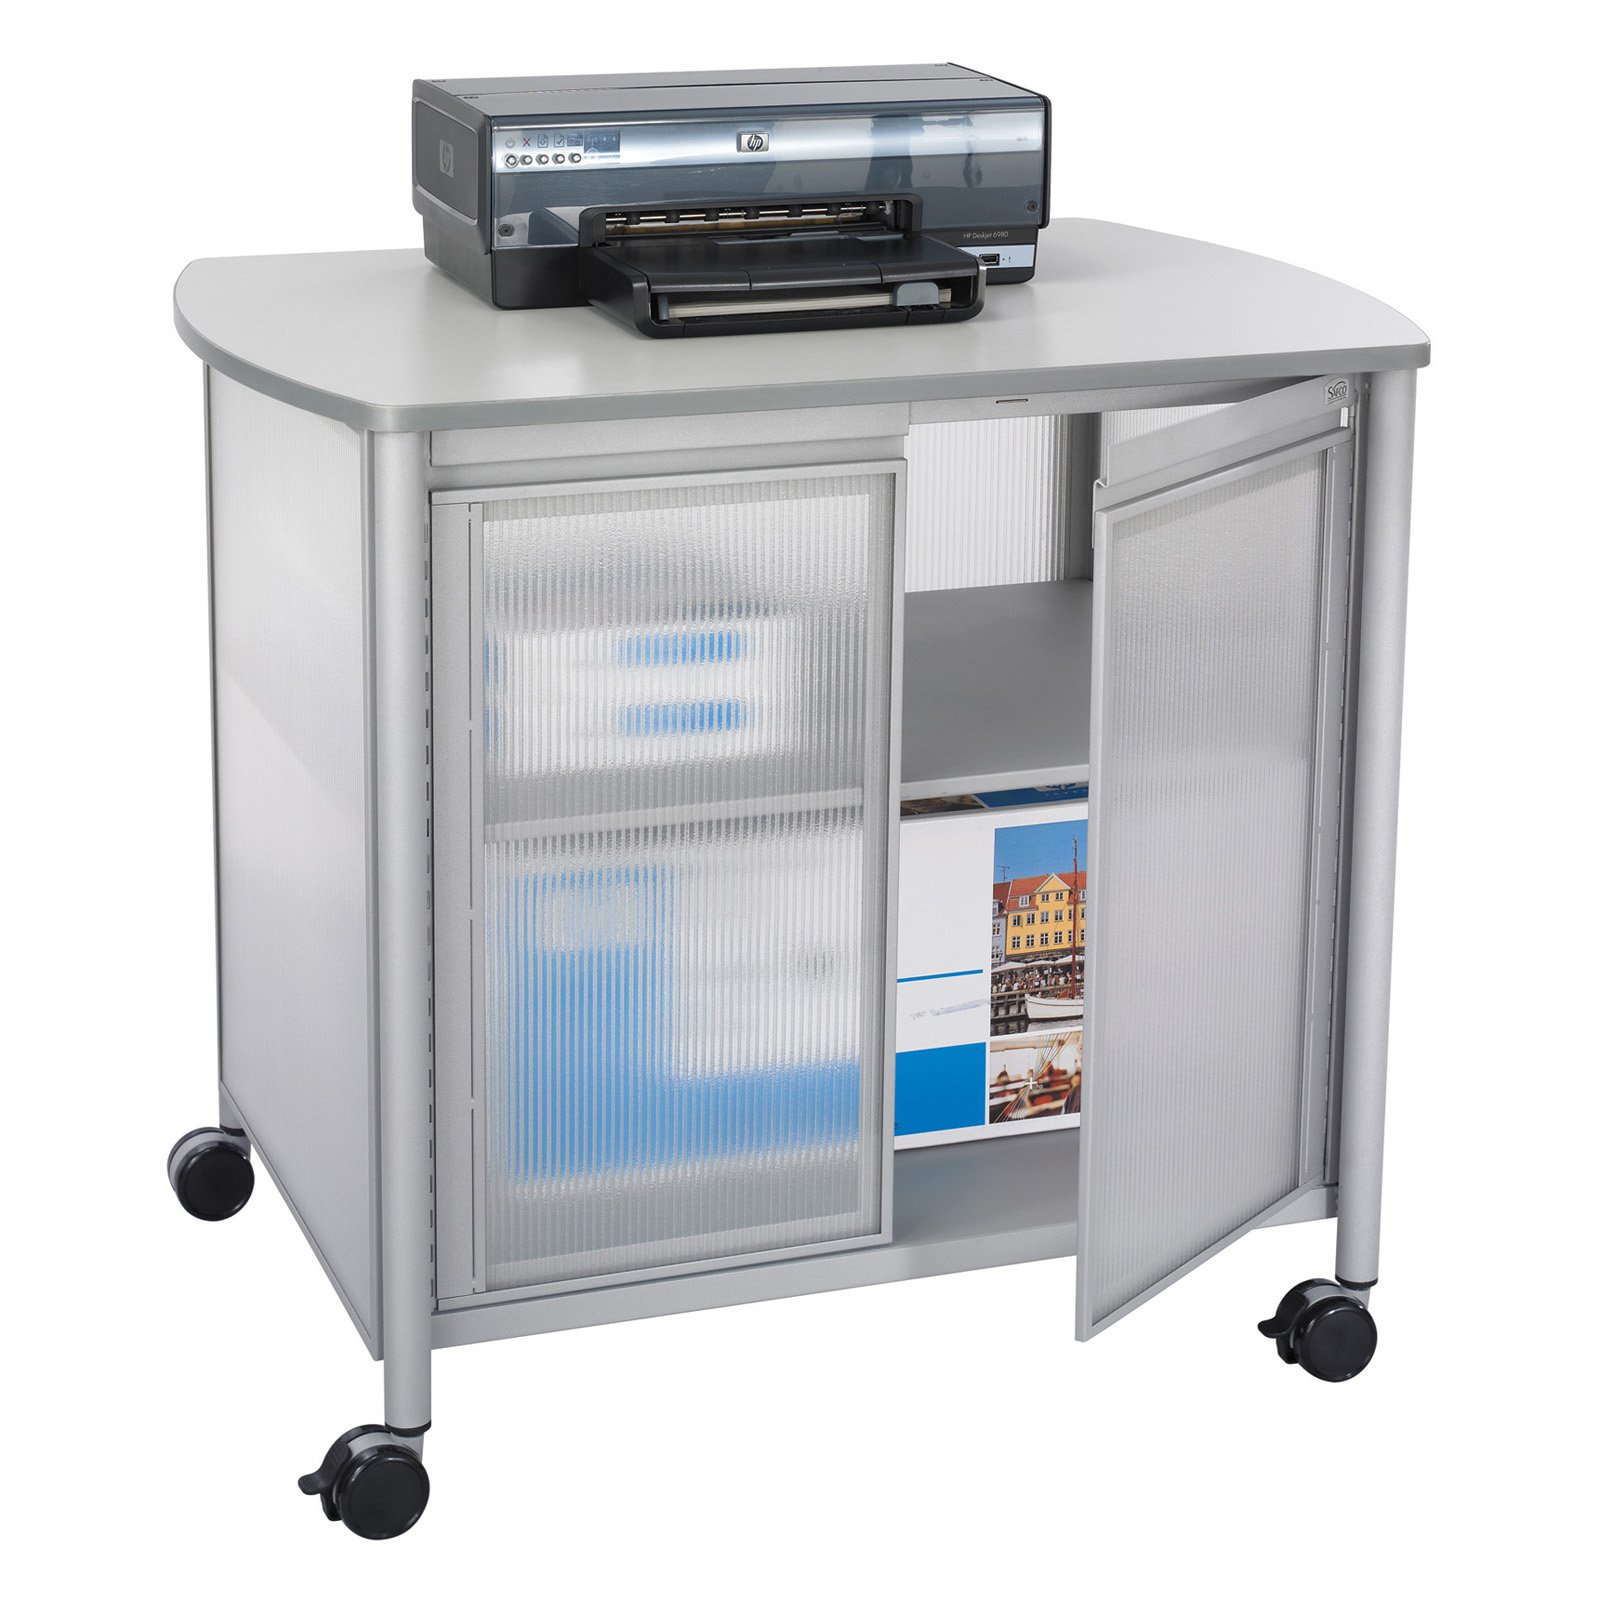 Safco Impromptu Deluxe Machine Stand with Doors - Gray